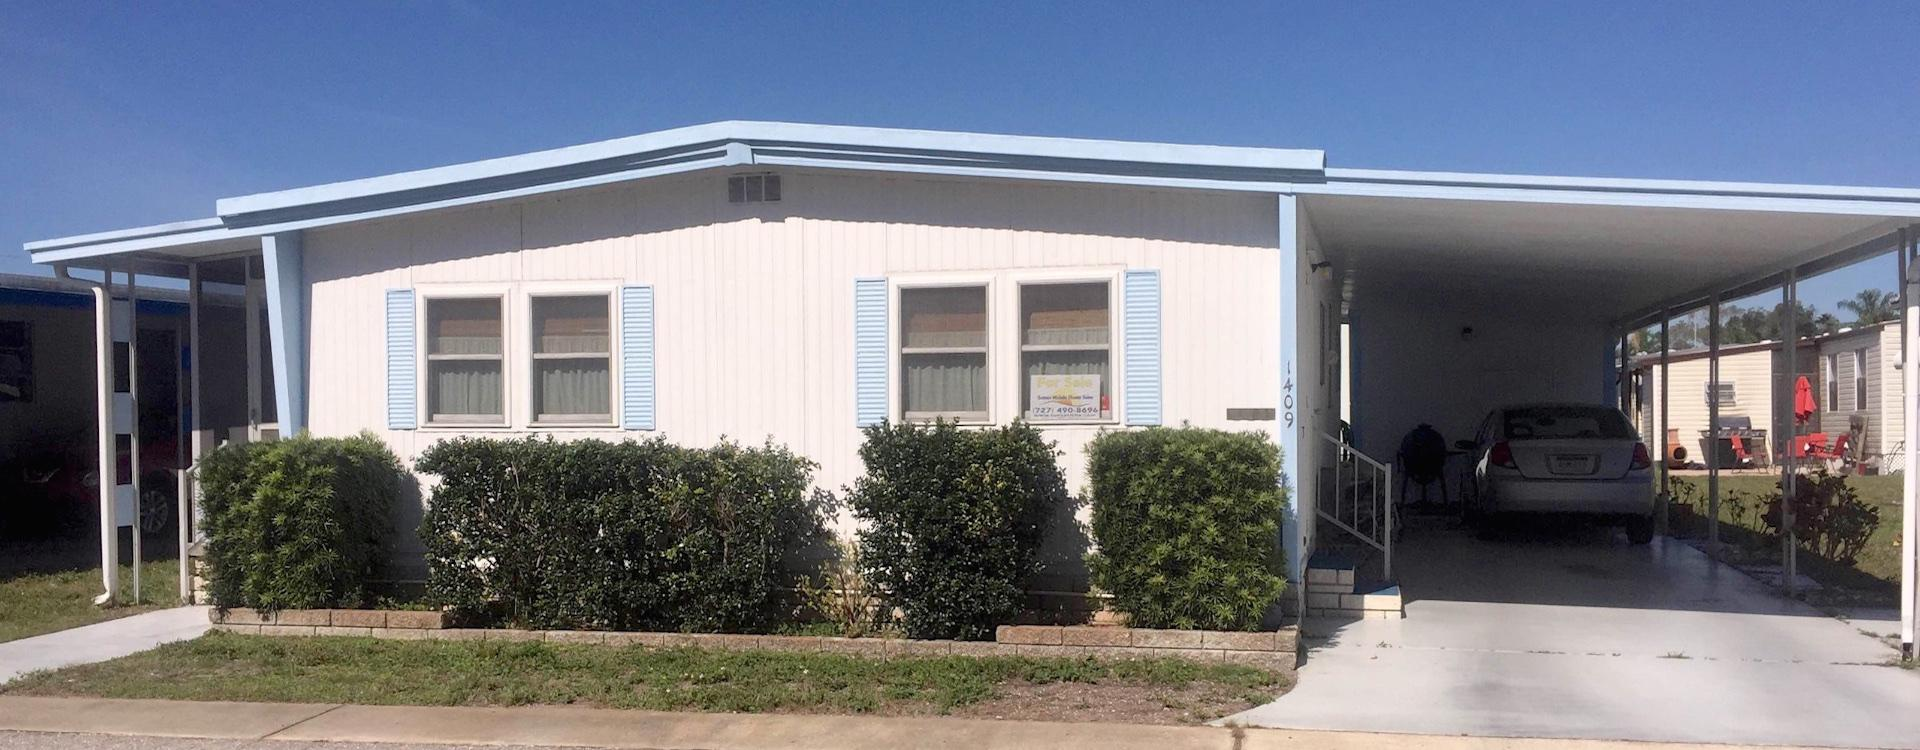 Mobile Home For Sale Largo Fl Bay Ranch Mobile Home